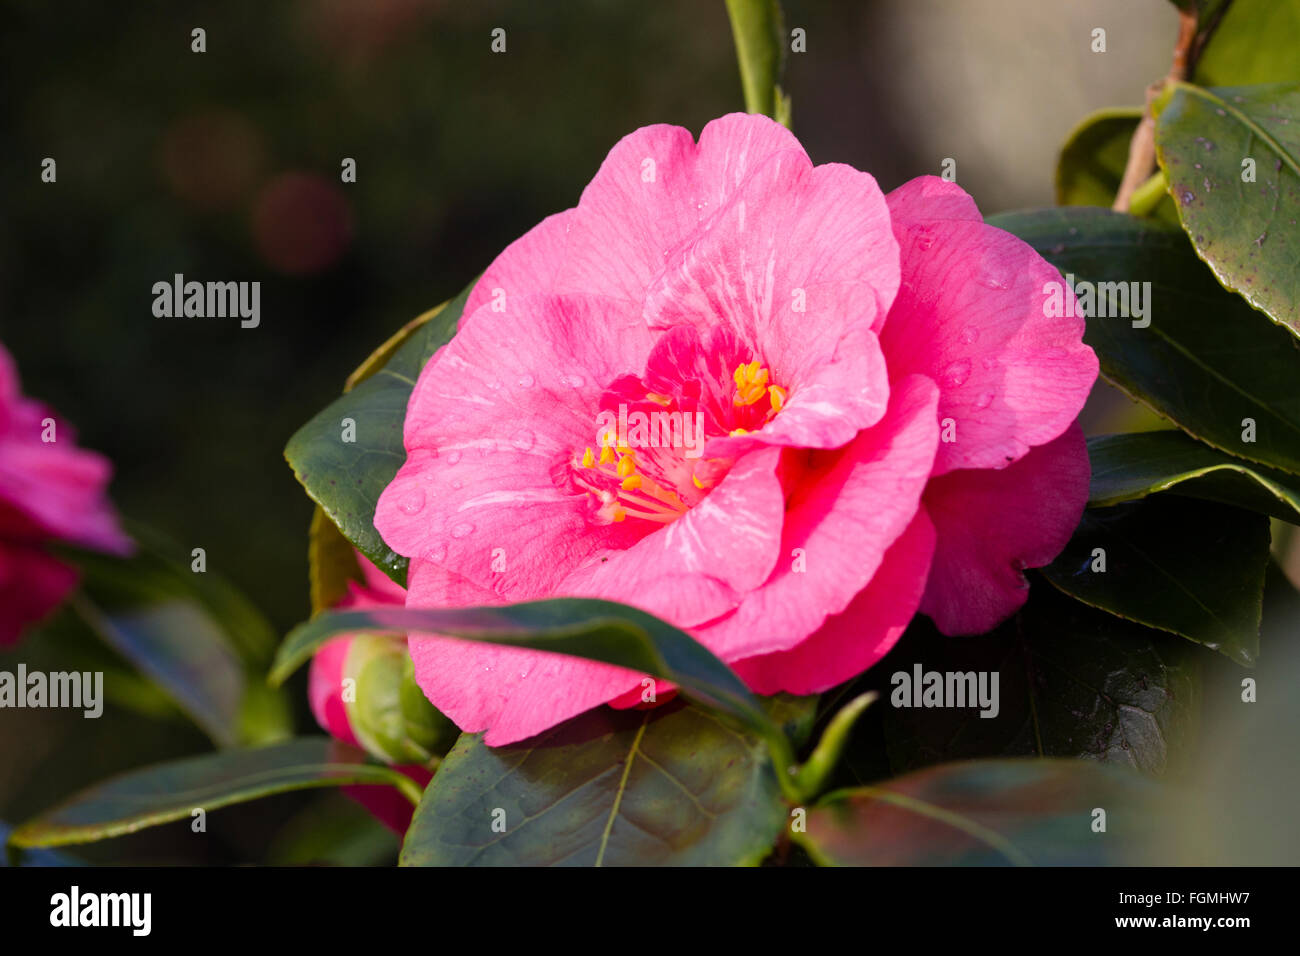 Double pink flowers of the winter blooming evergreen, Camellia x williamsii 'Thomas Cornelius Cole' - Stock Image